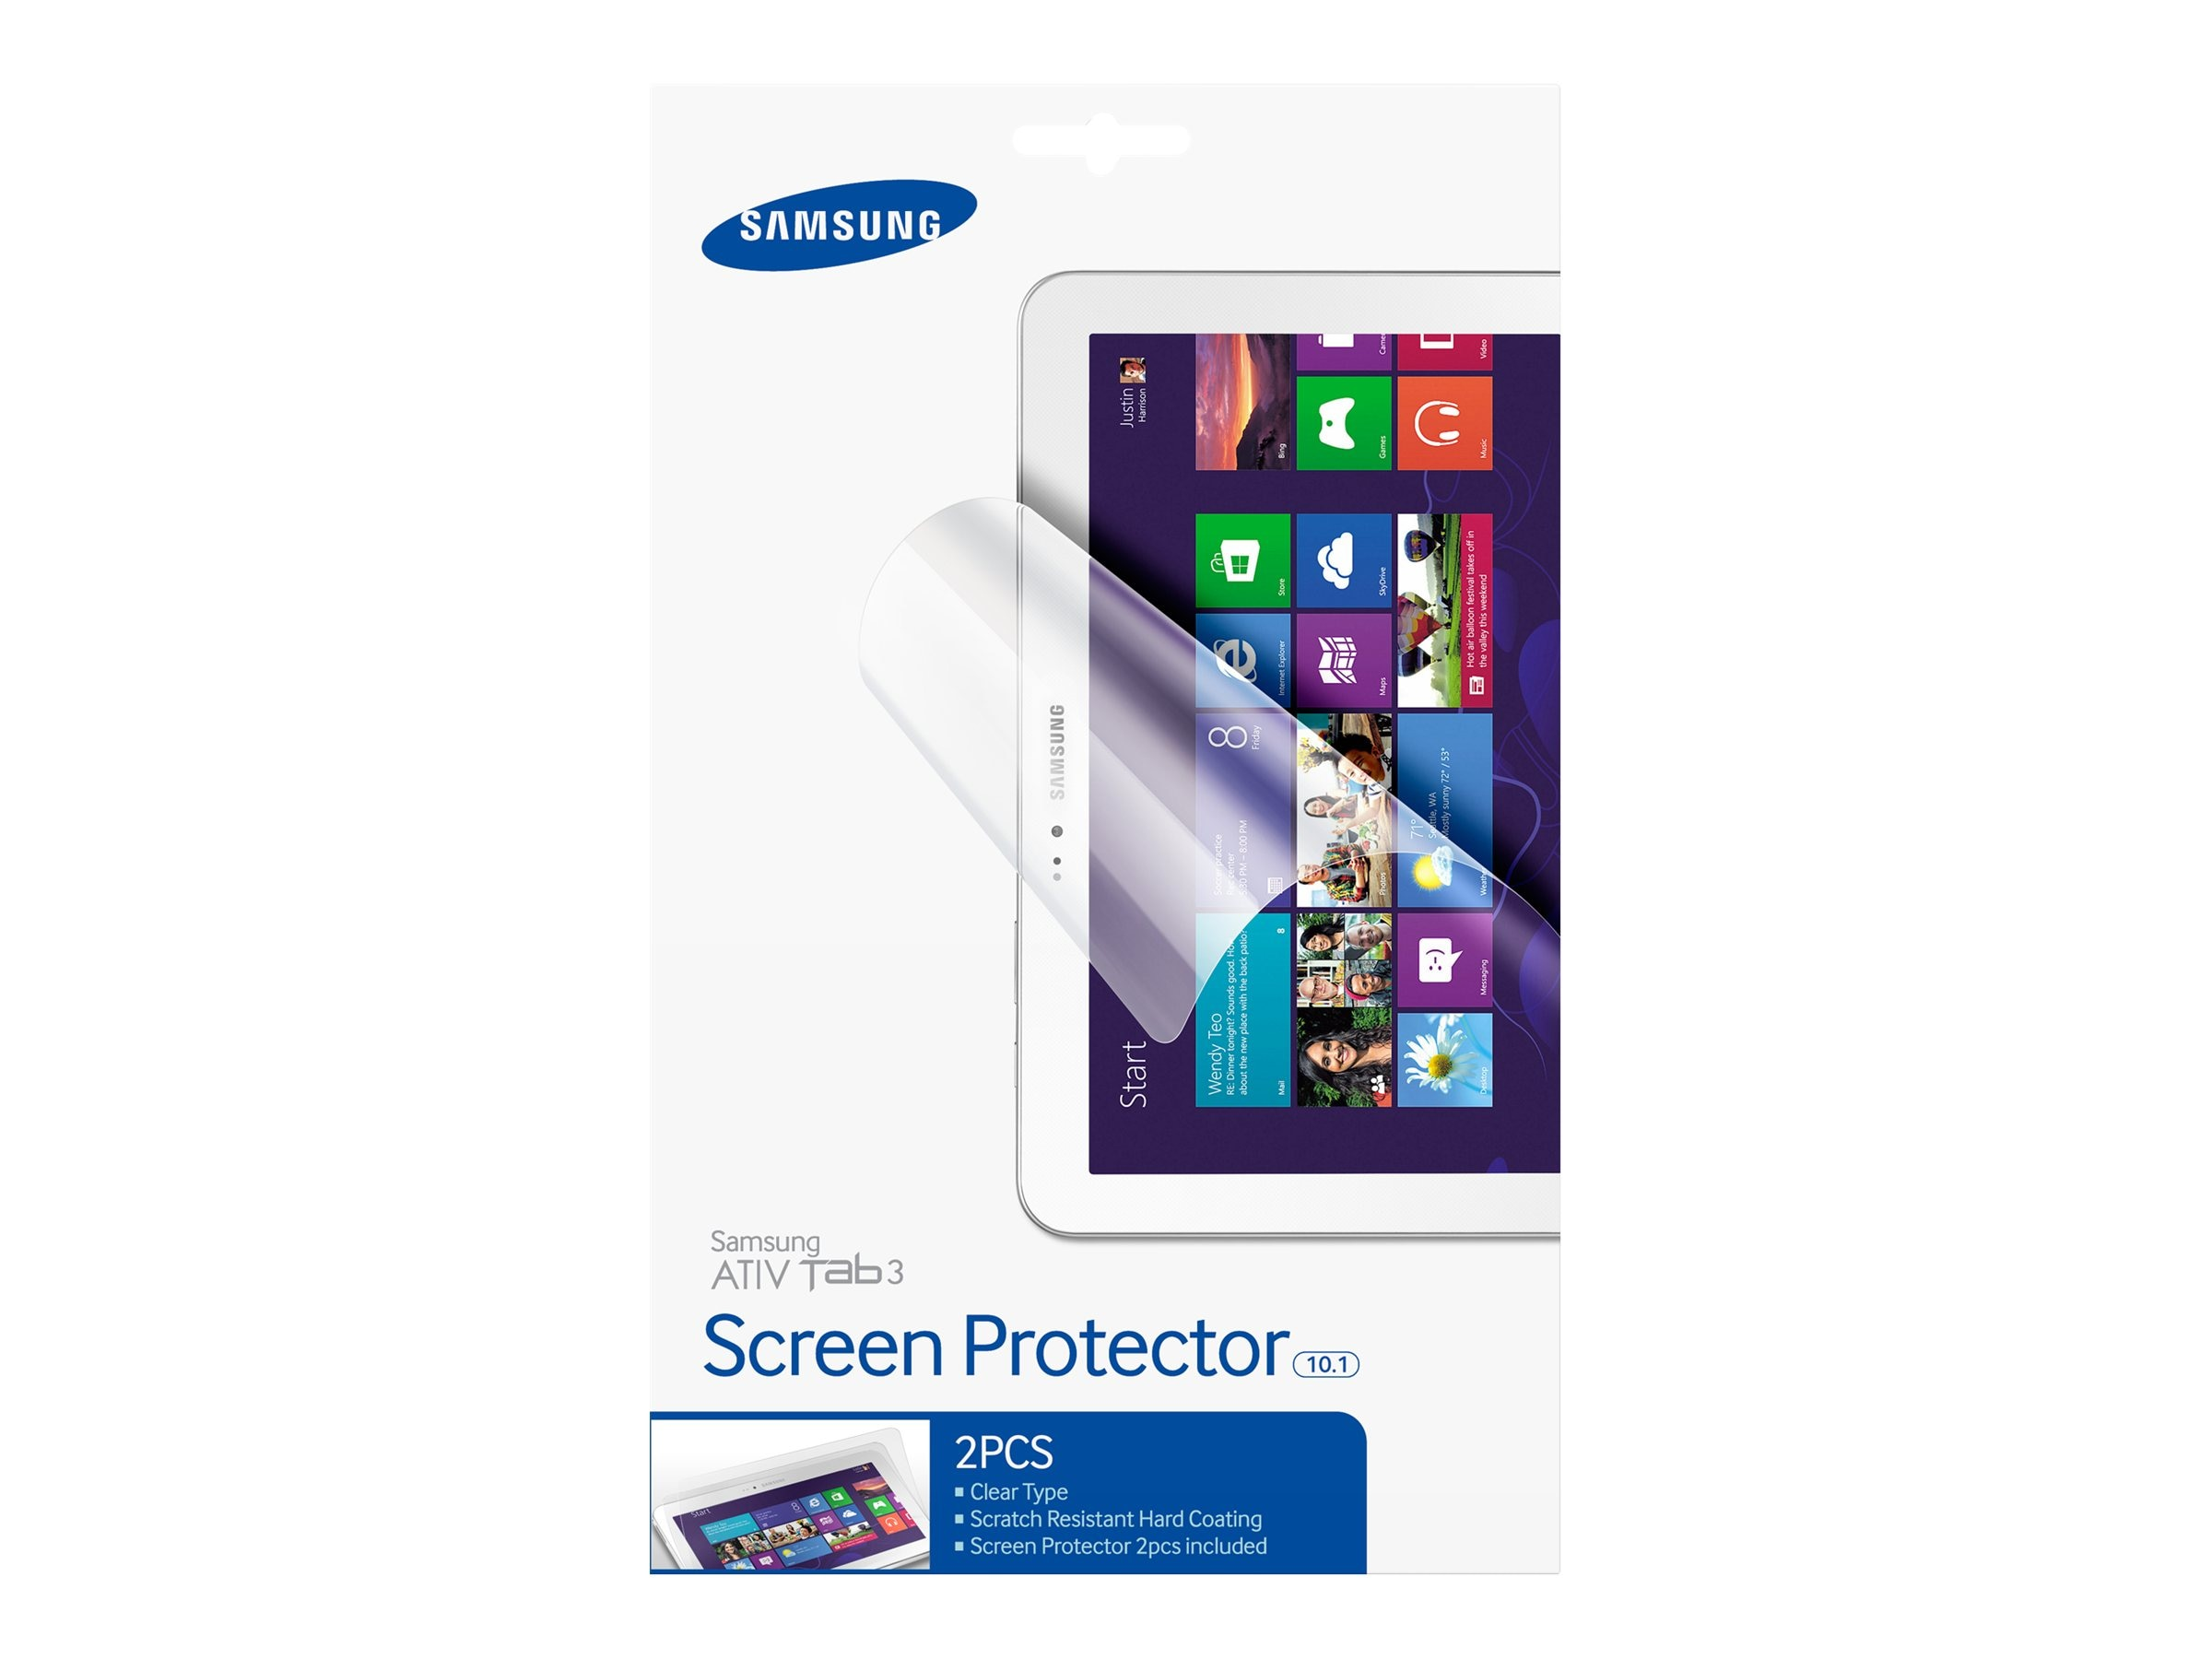 Samsung Screen Protector for ATIV Tab 3 10.1, Clear (2-pack), AA-SP2NW10/US